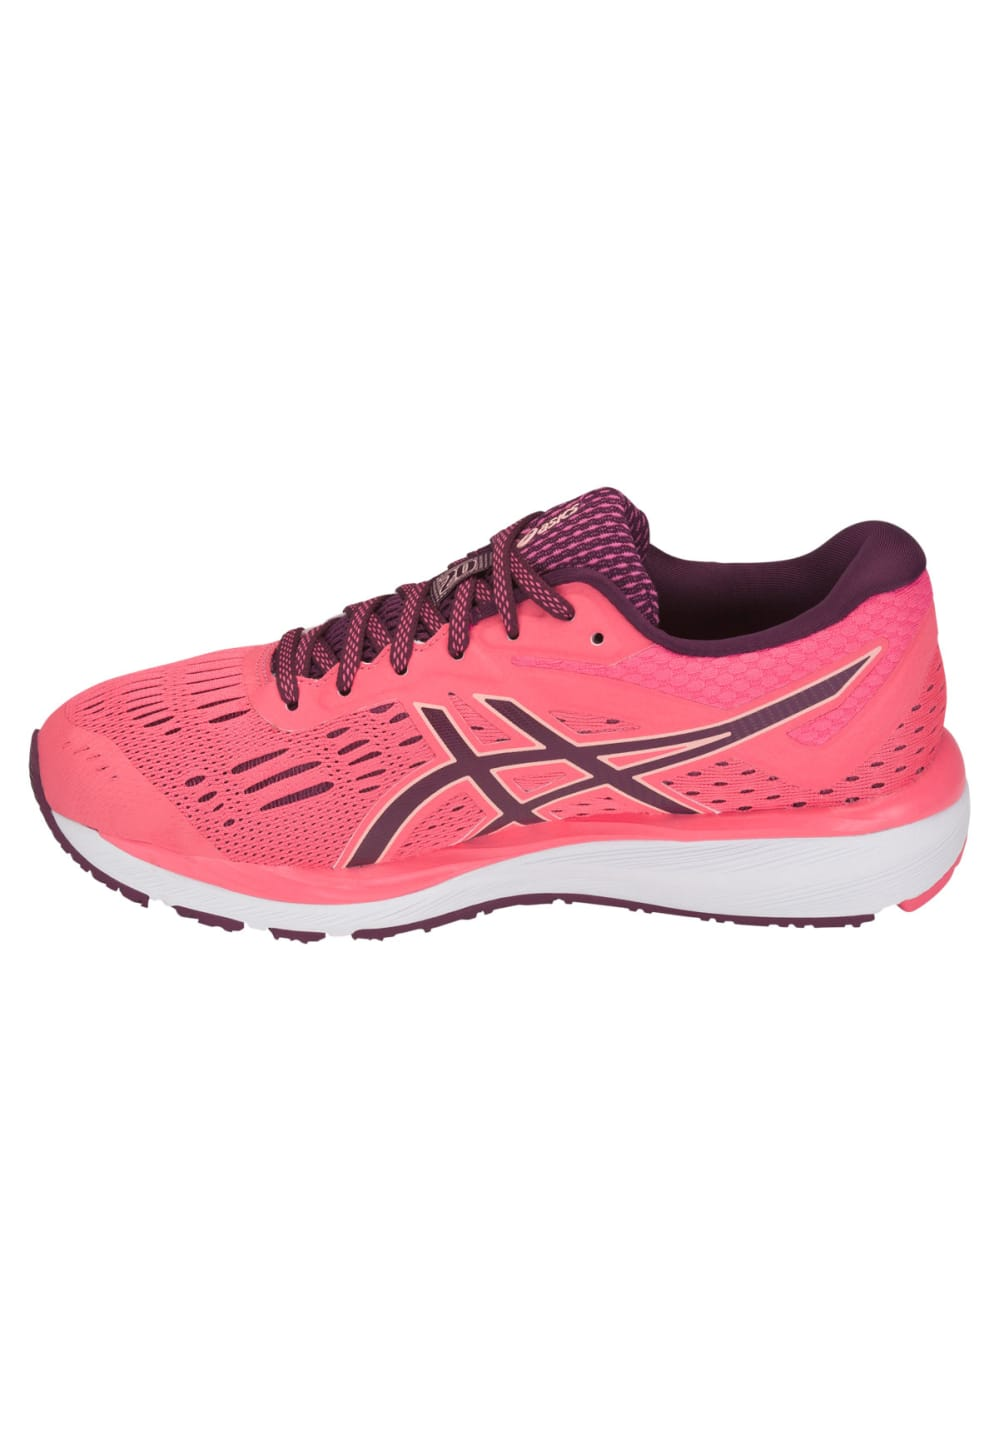 5ebc8028f5e0 ASICS GEL-CUMULUS 20 - Running shoes for Women - Pink | 21RUN